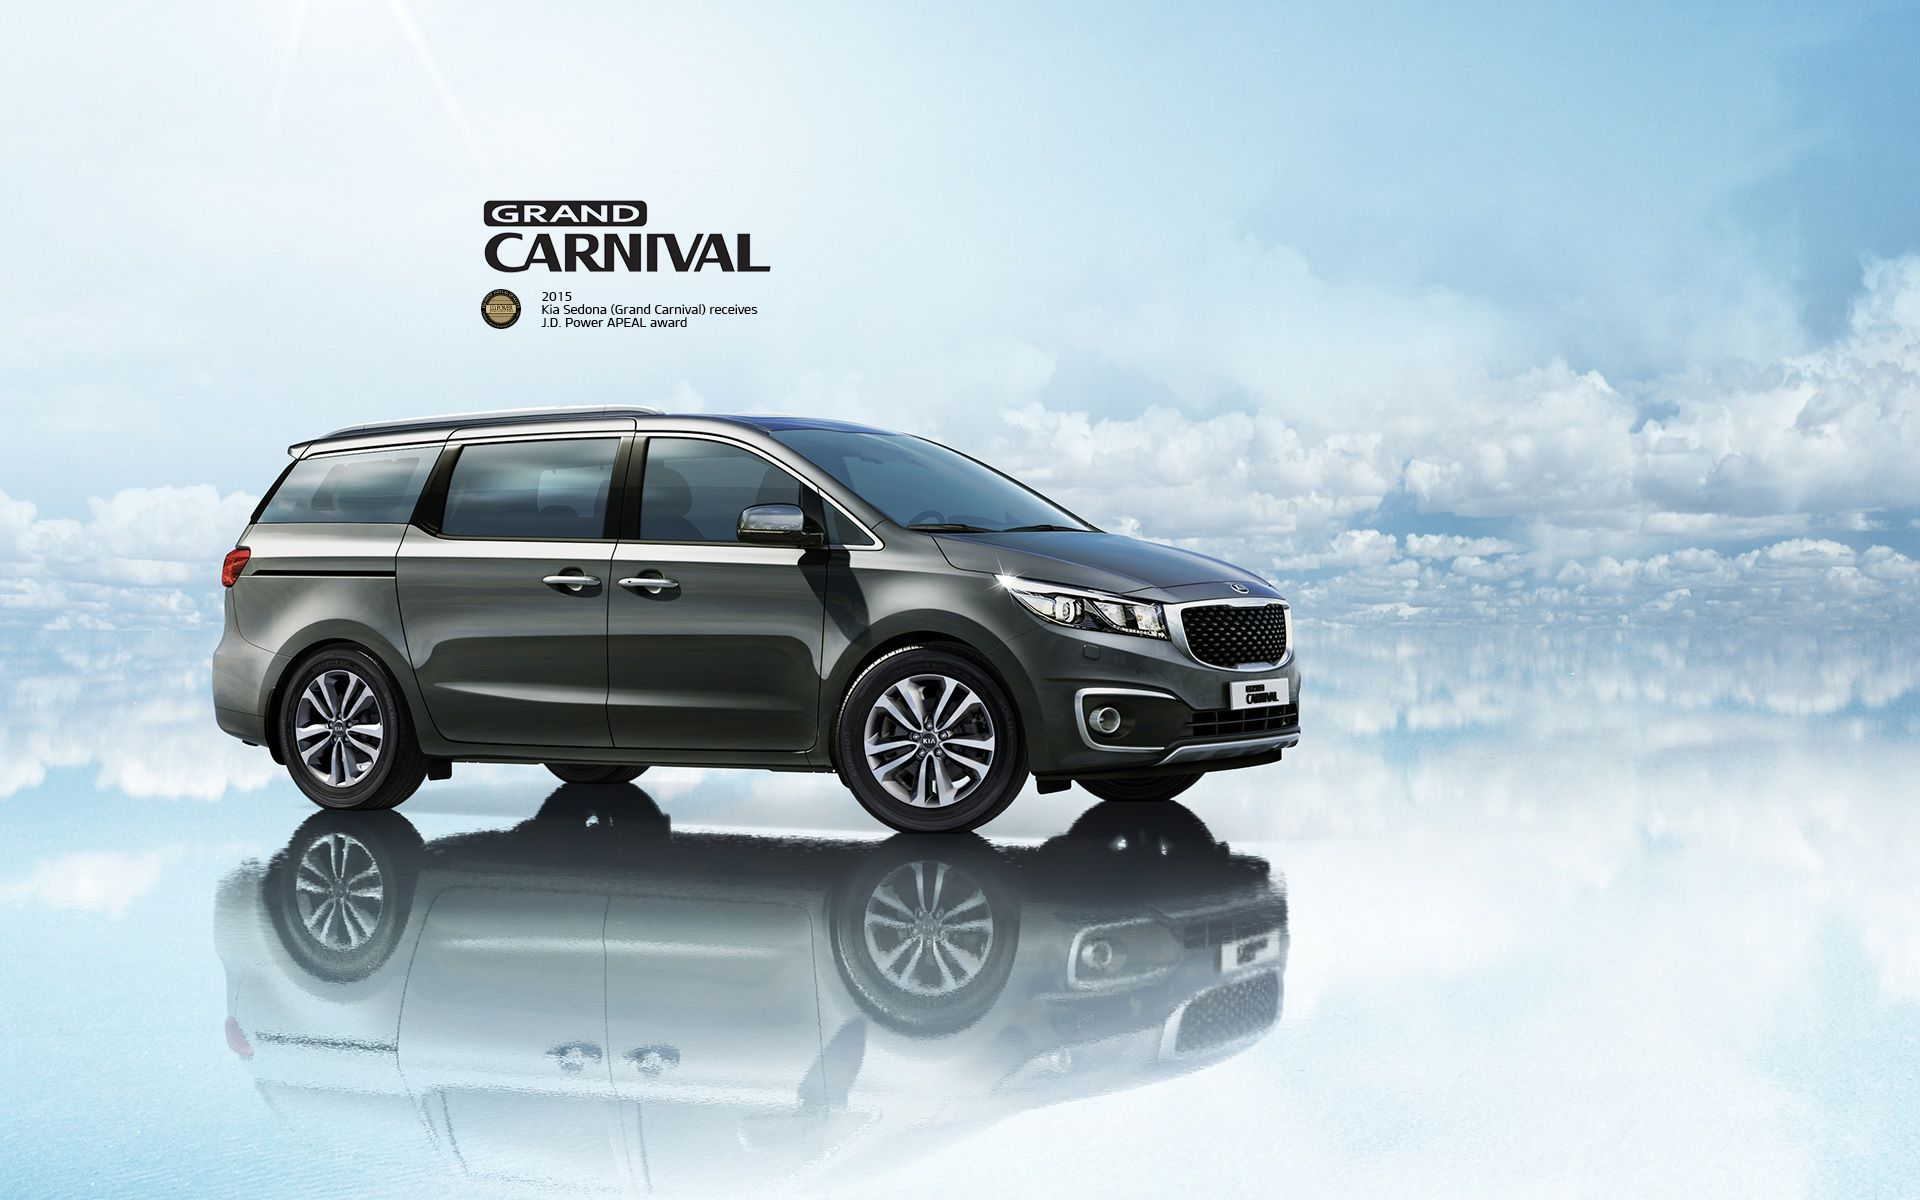 KiaLucky Motors has Launched Grand Carnival in Pakistan